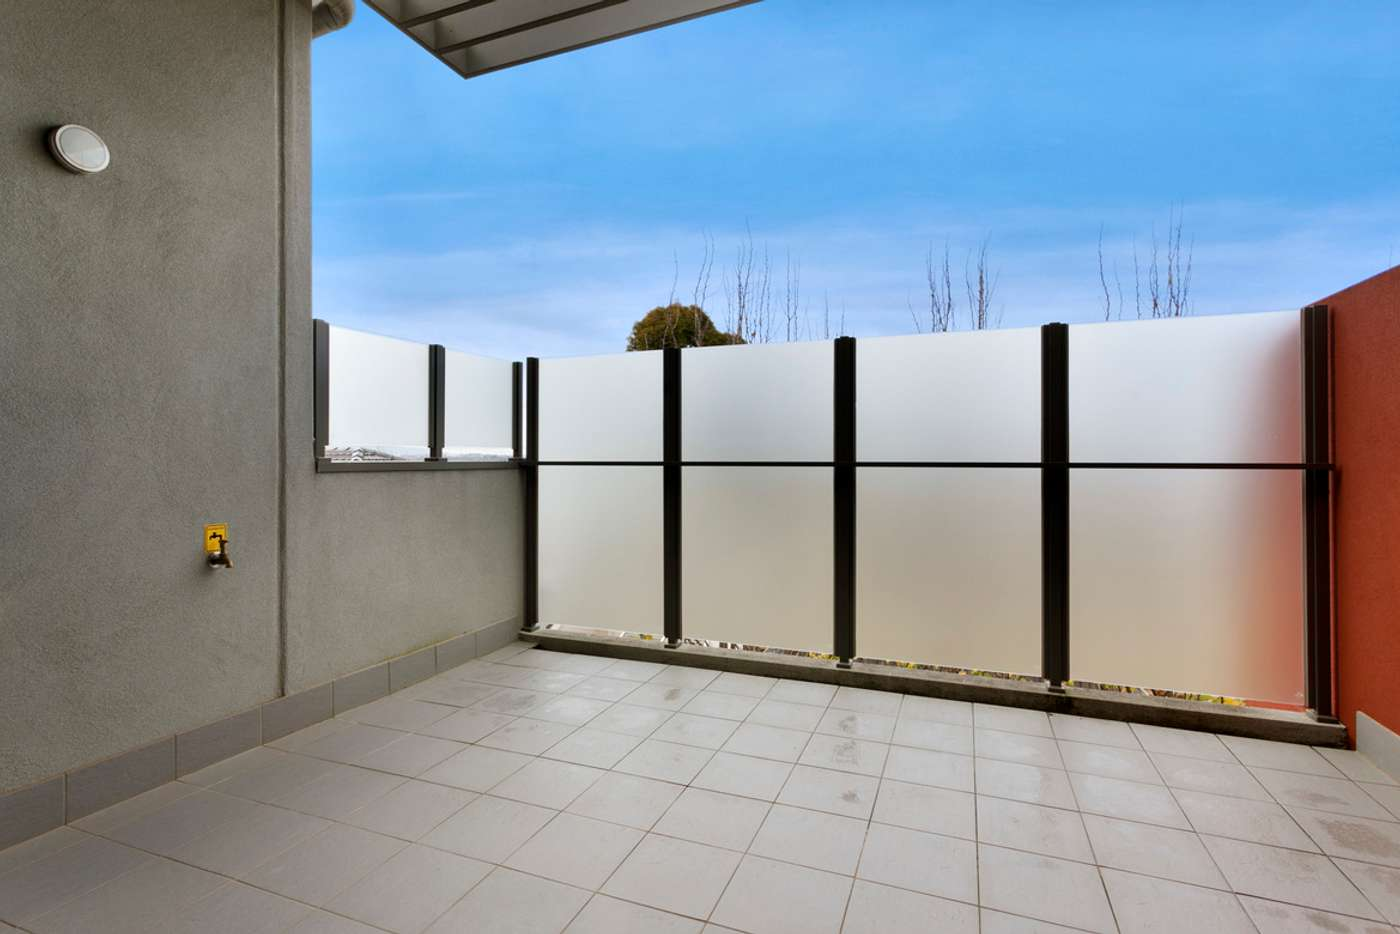 Seventh view of Homely apartment listing, 15/107 Whittens Lane, Doncaster VIC 3108